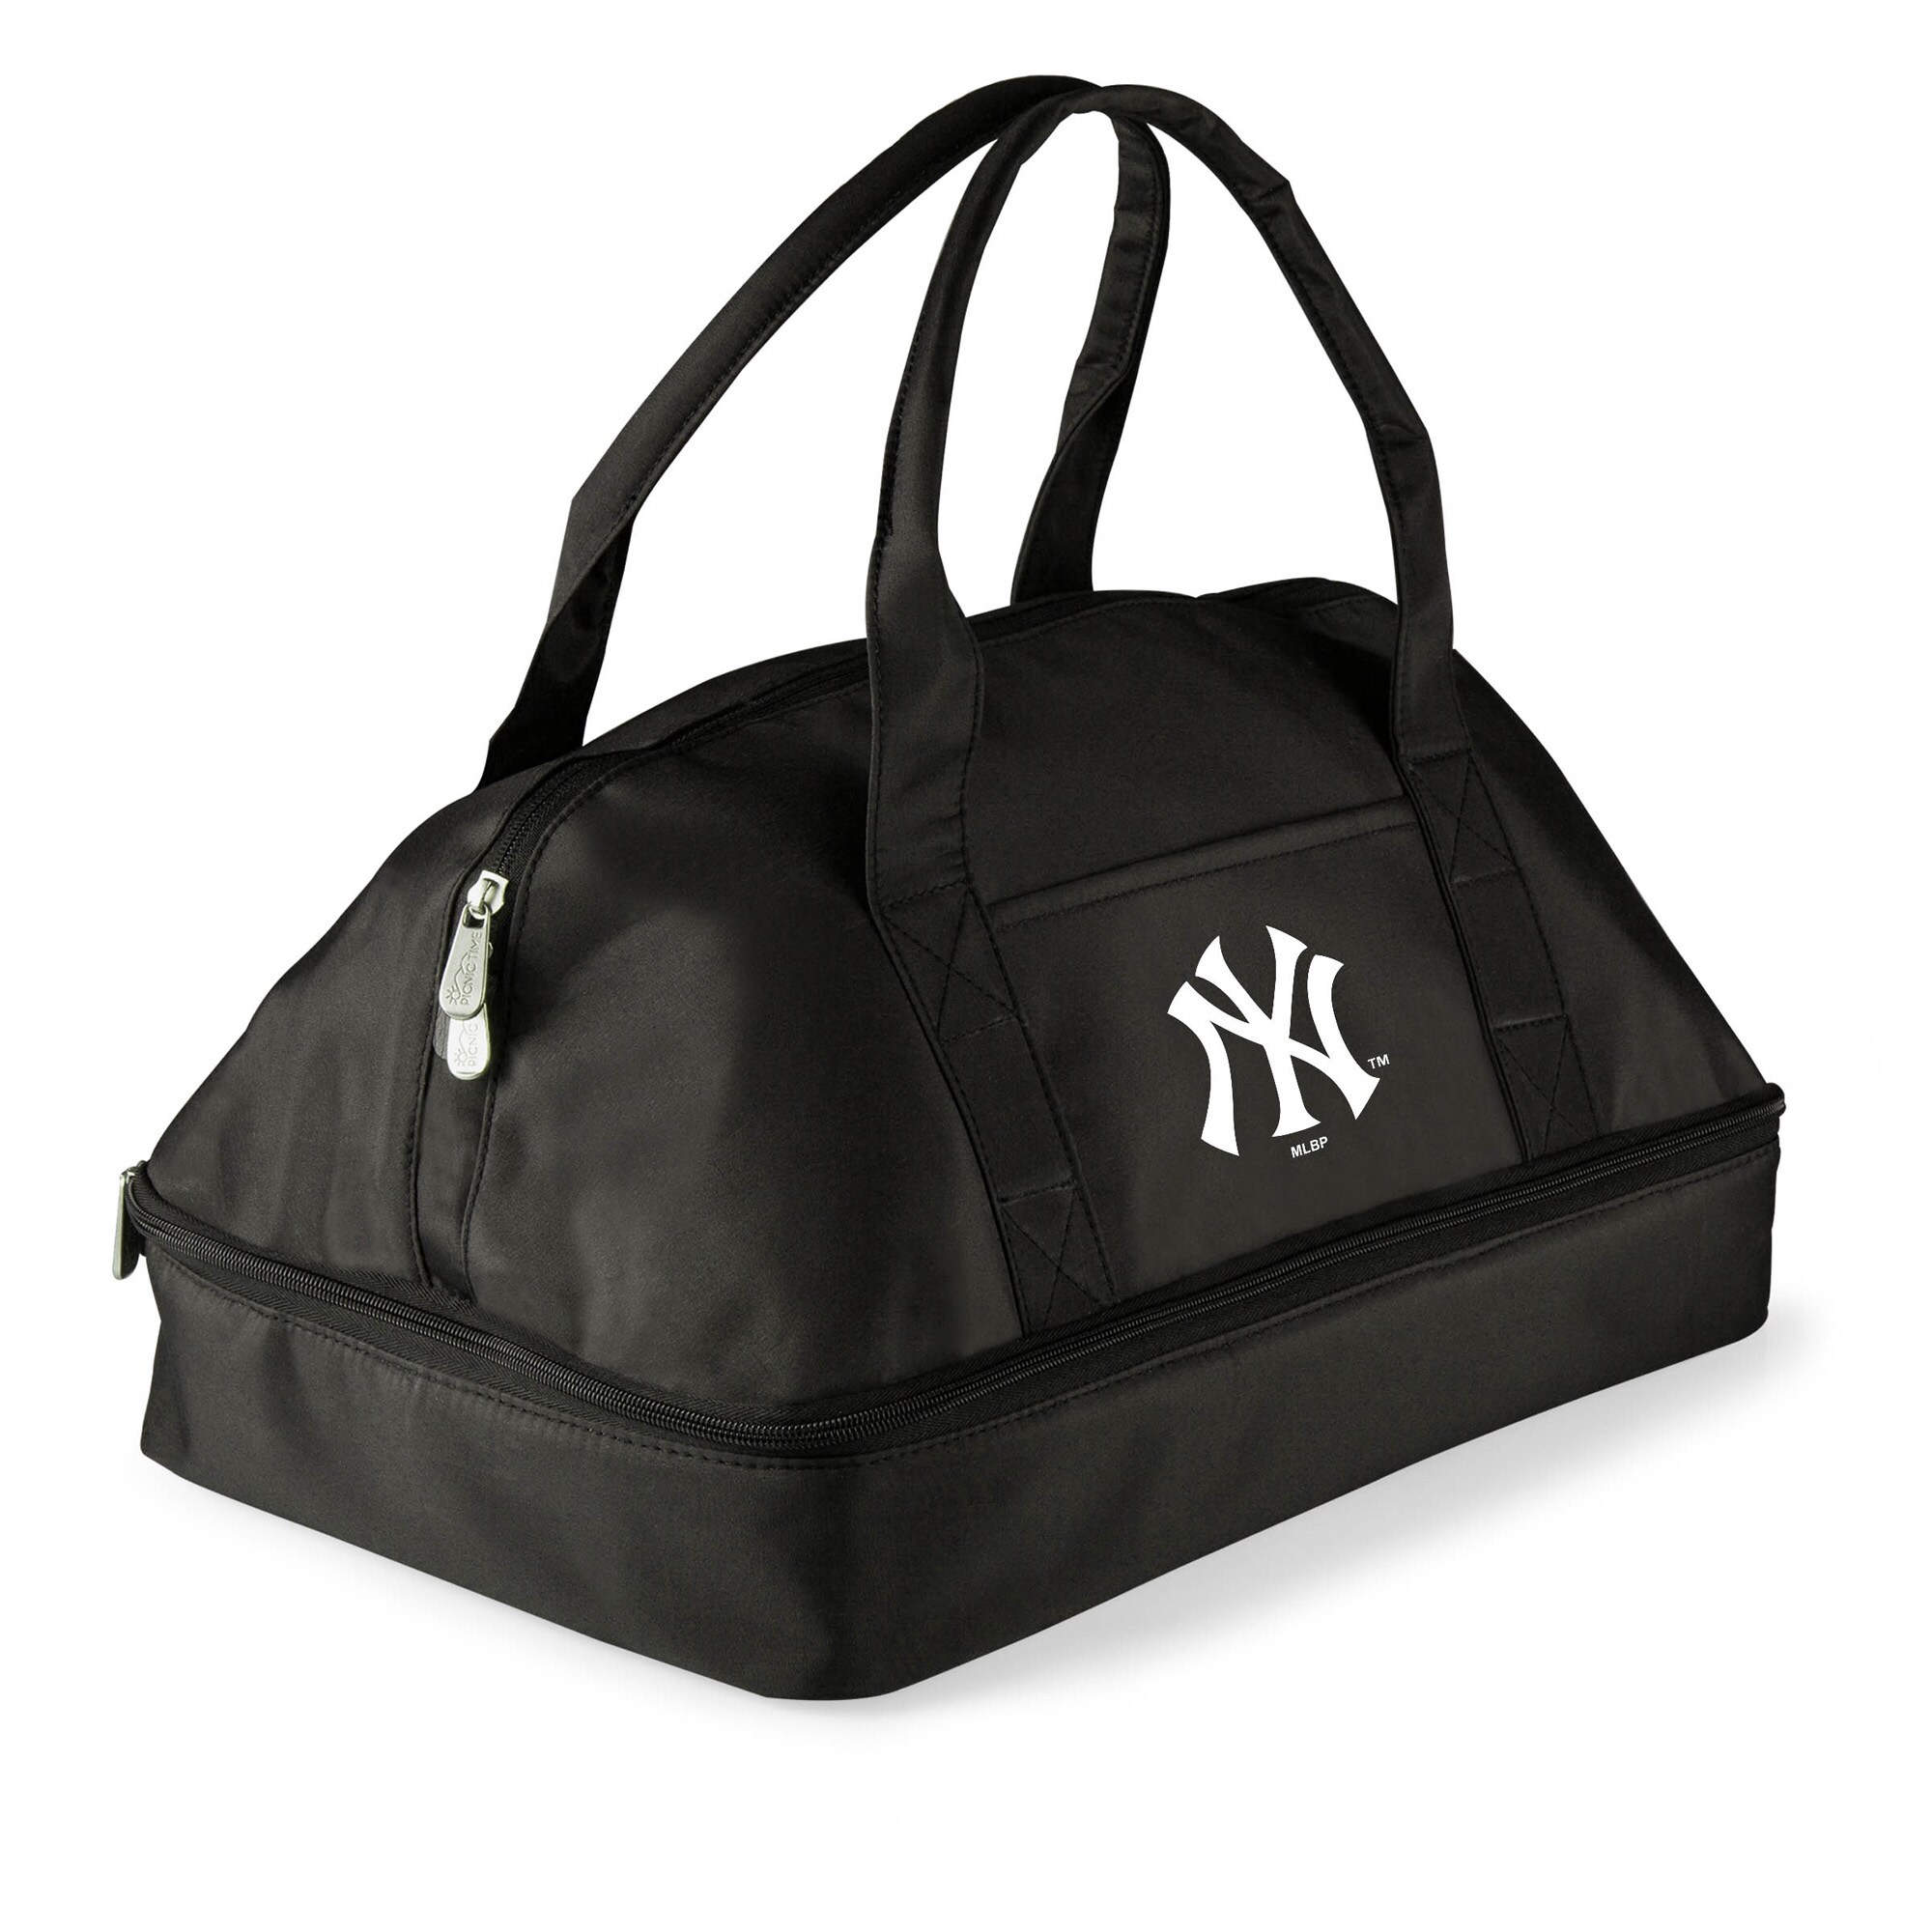 New York Yankees Potluck Casserole Tote - Black